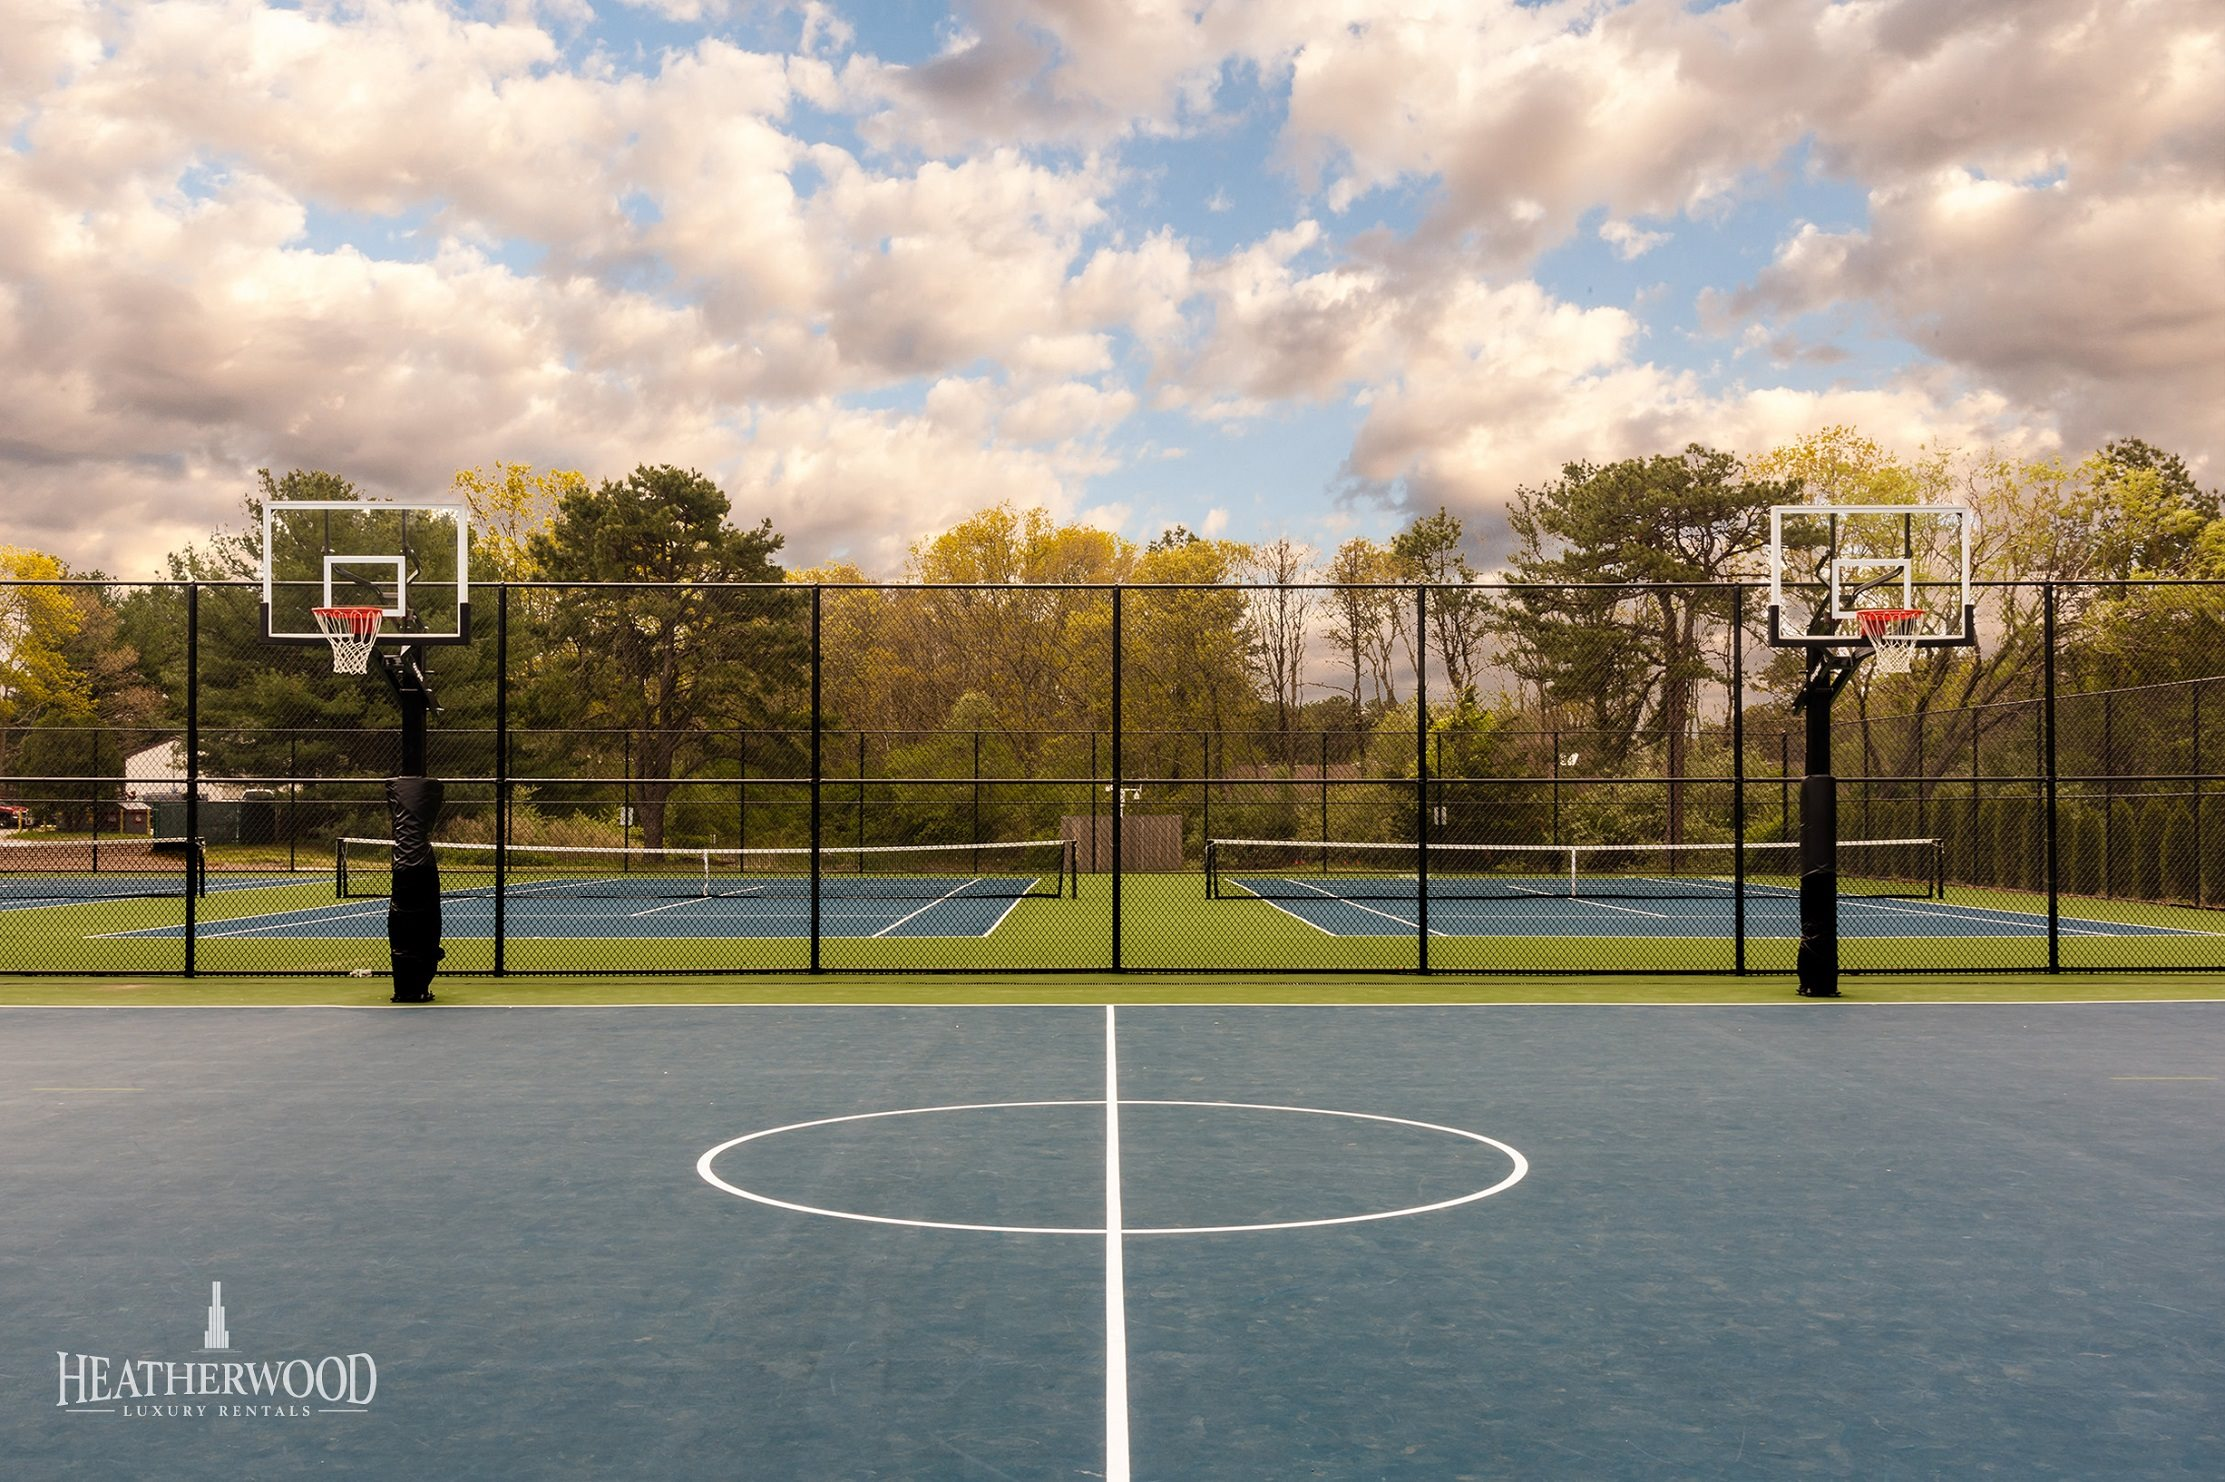 Basketball Court with Tennis Courts in the Background